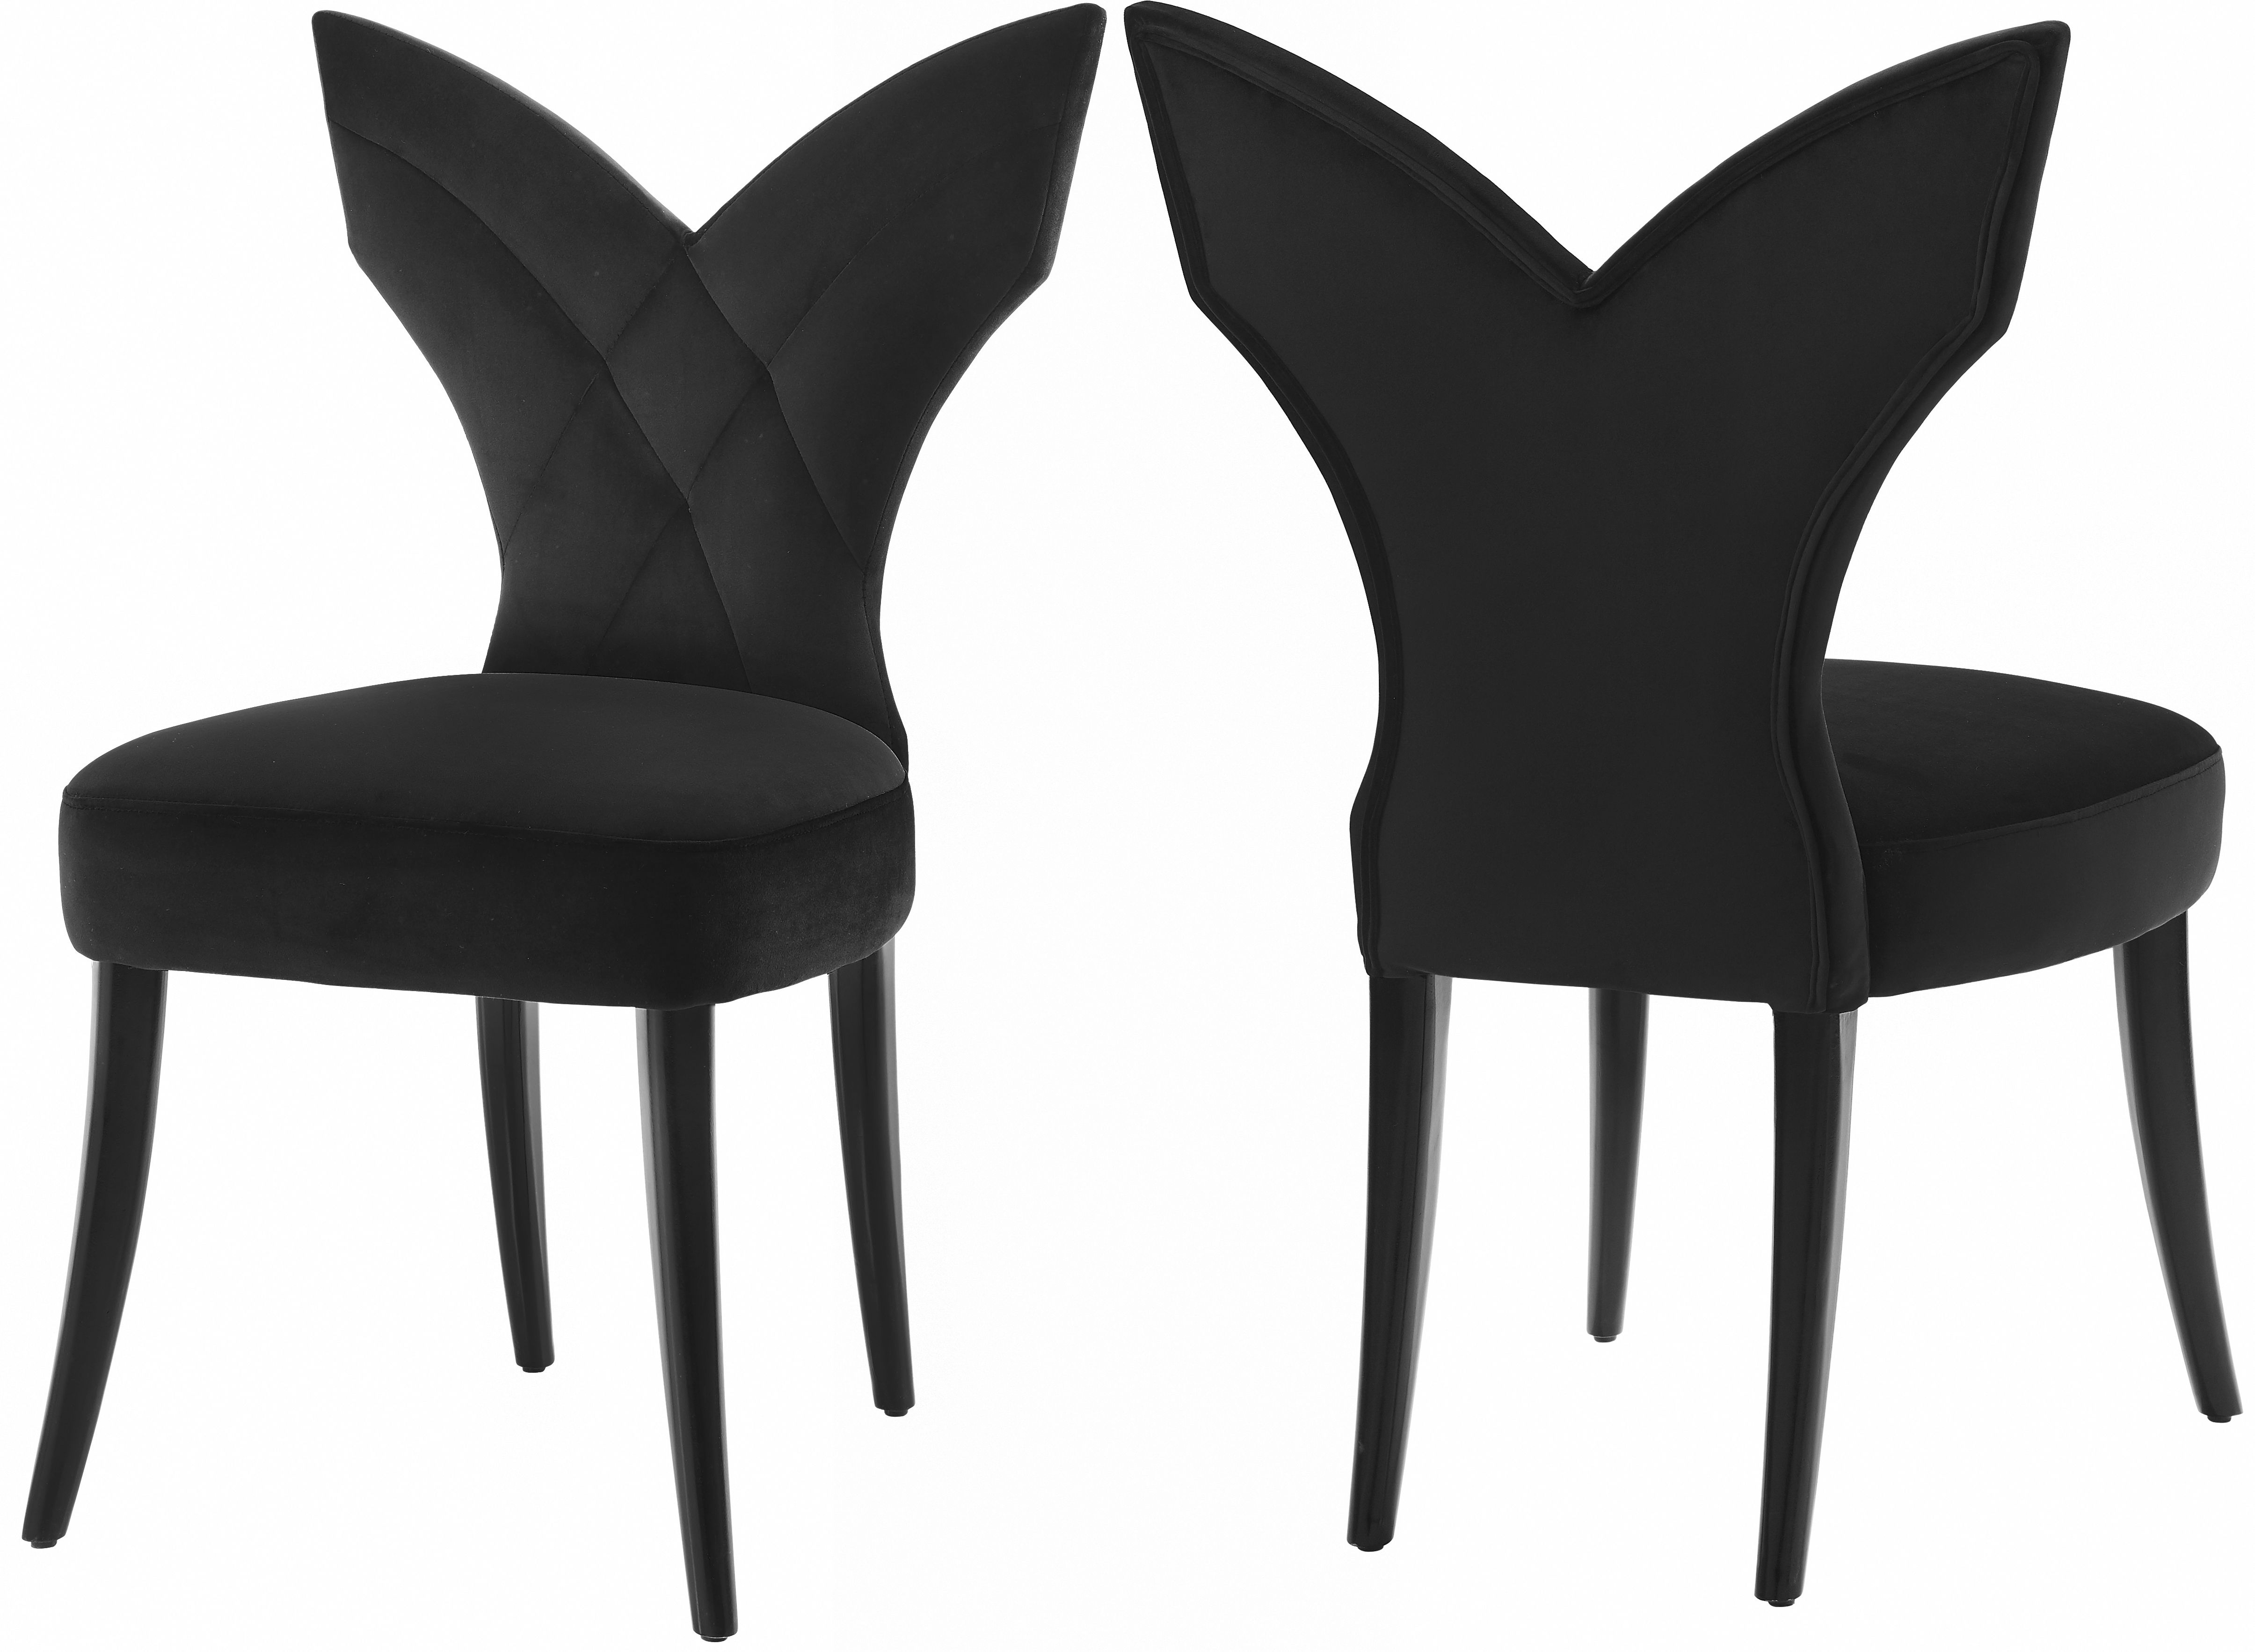 2 Meridian Furniture Leandra Black Velvet Dining Chairs The Classy